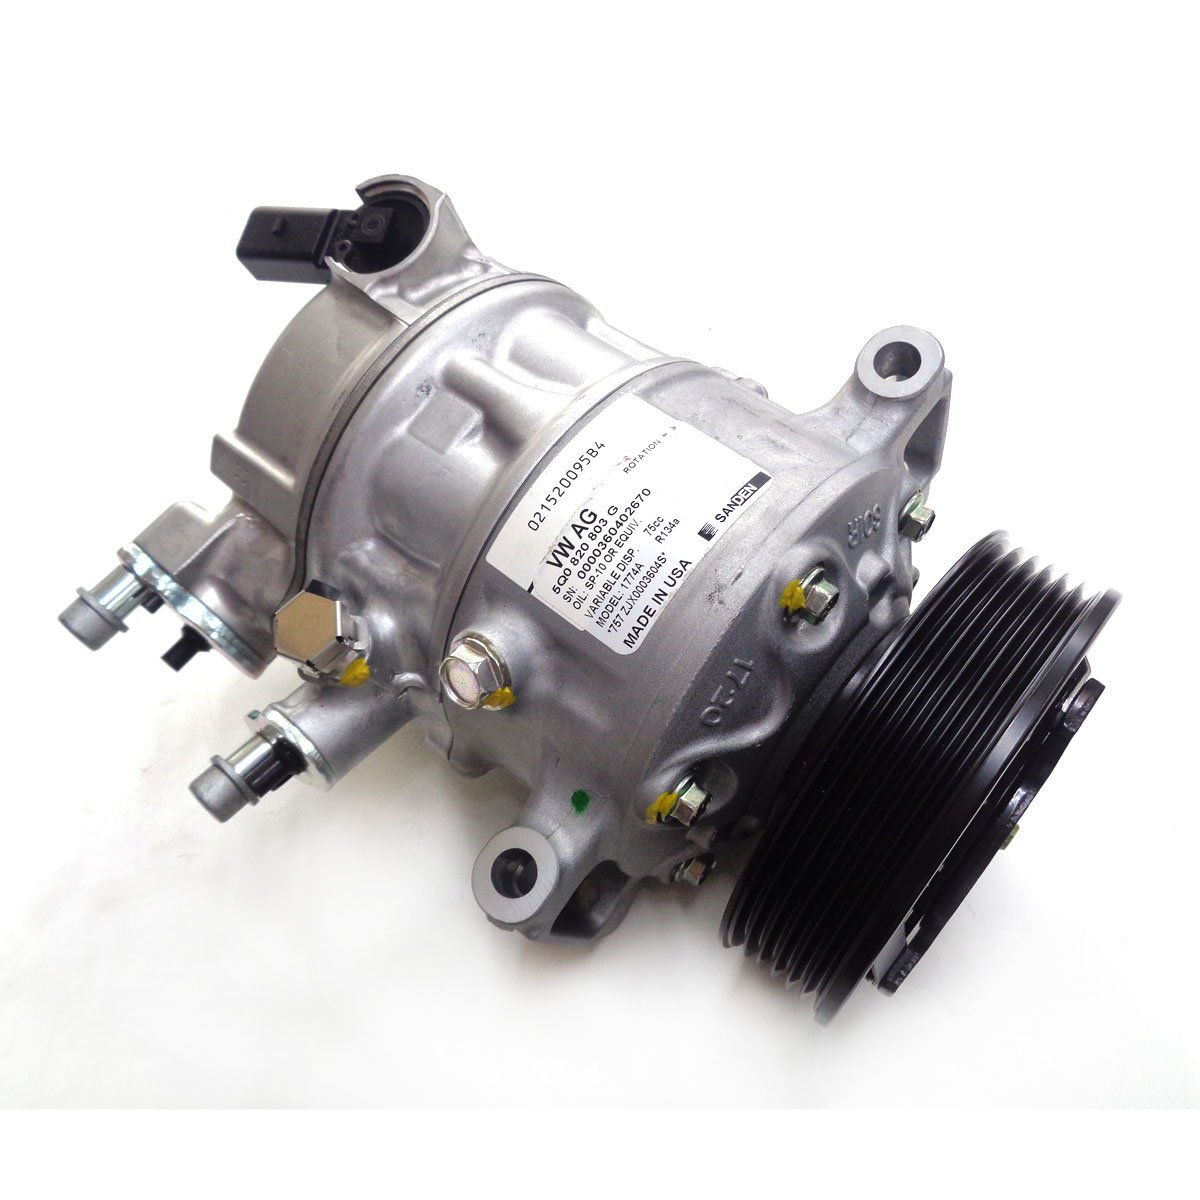 Compressor do Ar Condicionado Com Polia 6pk Vw - Ar Condicio